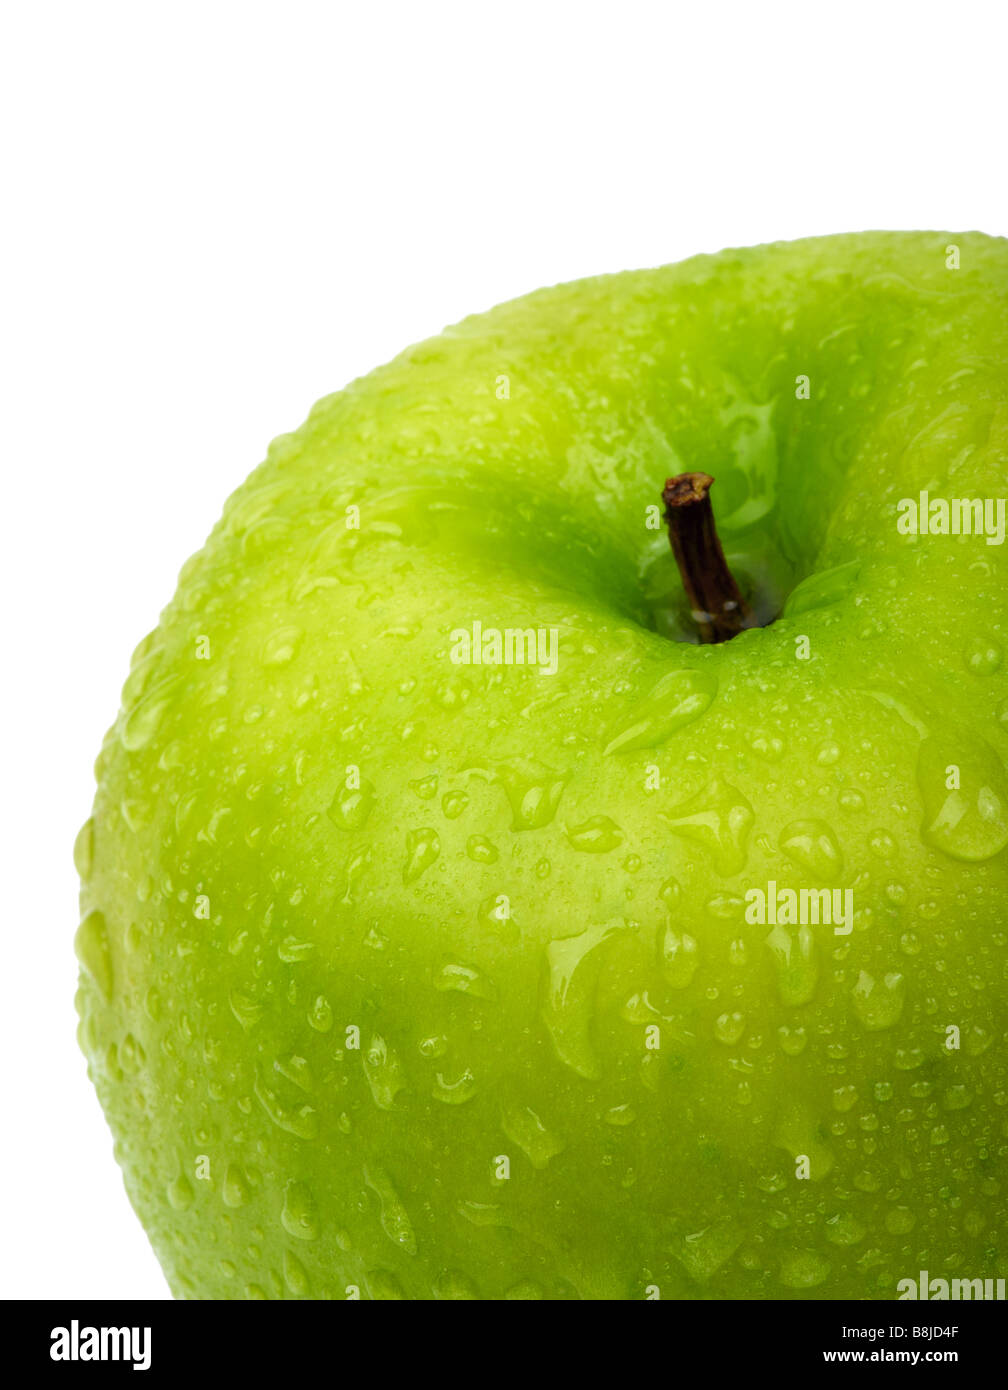 Green apple with water drops. Close-up - Stock Image